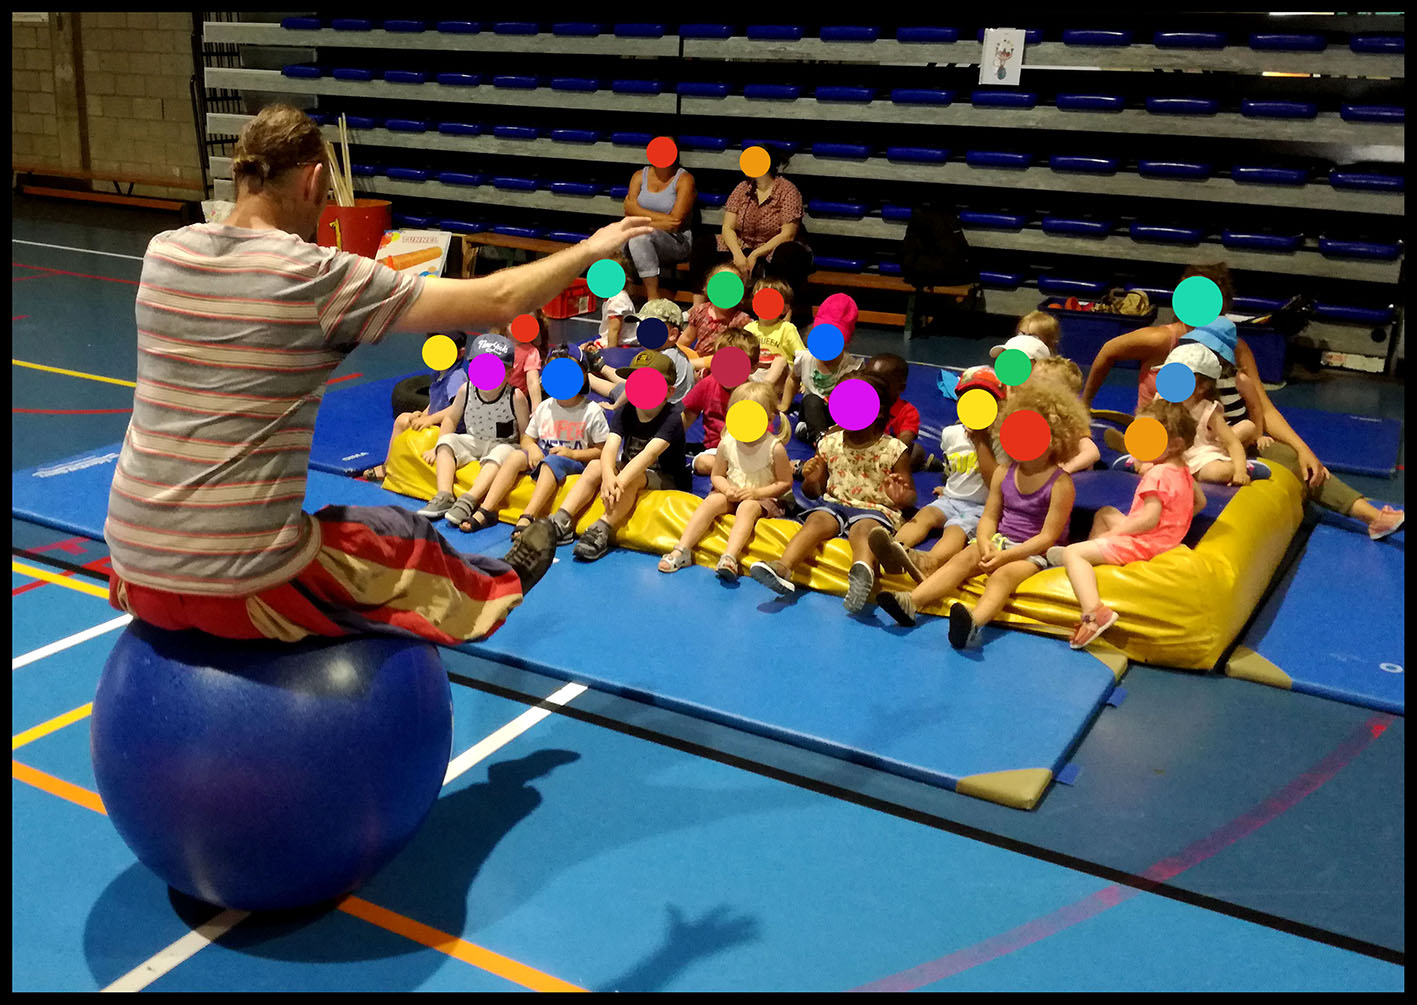 Animations-Ateliers - Cirque - Spectacle - Jongle - Cirque - Liege